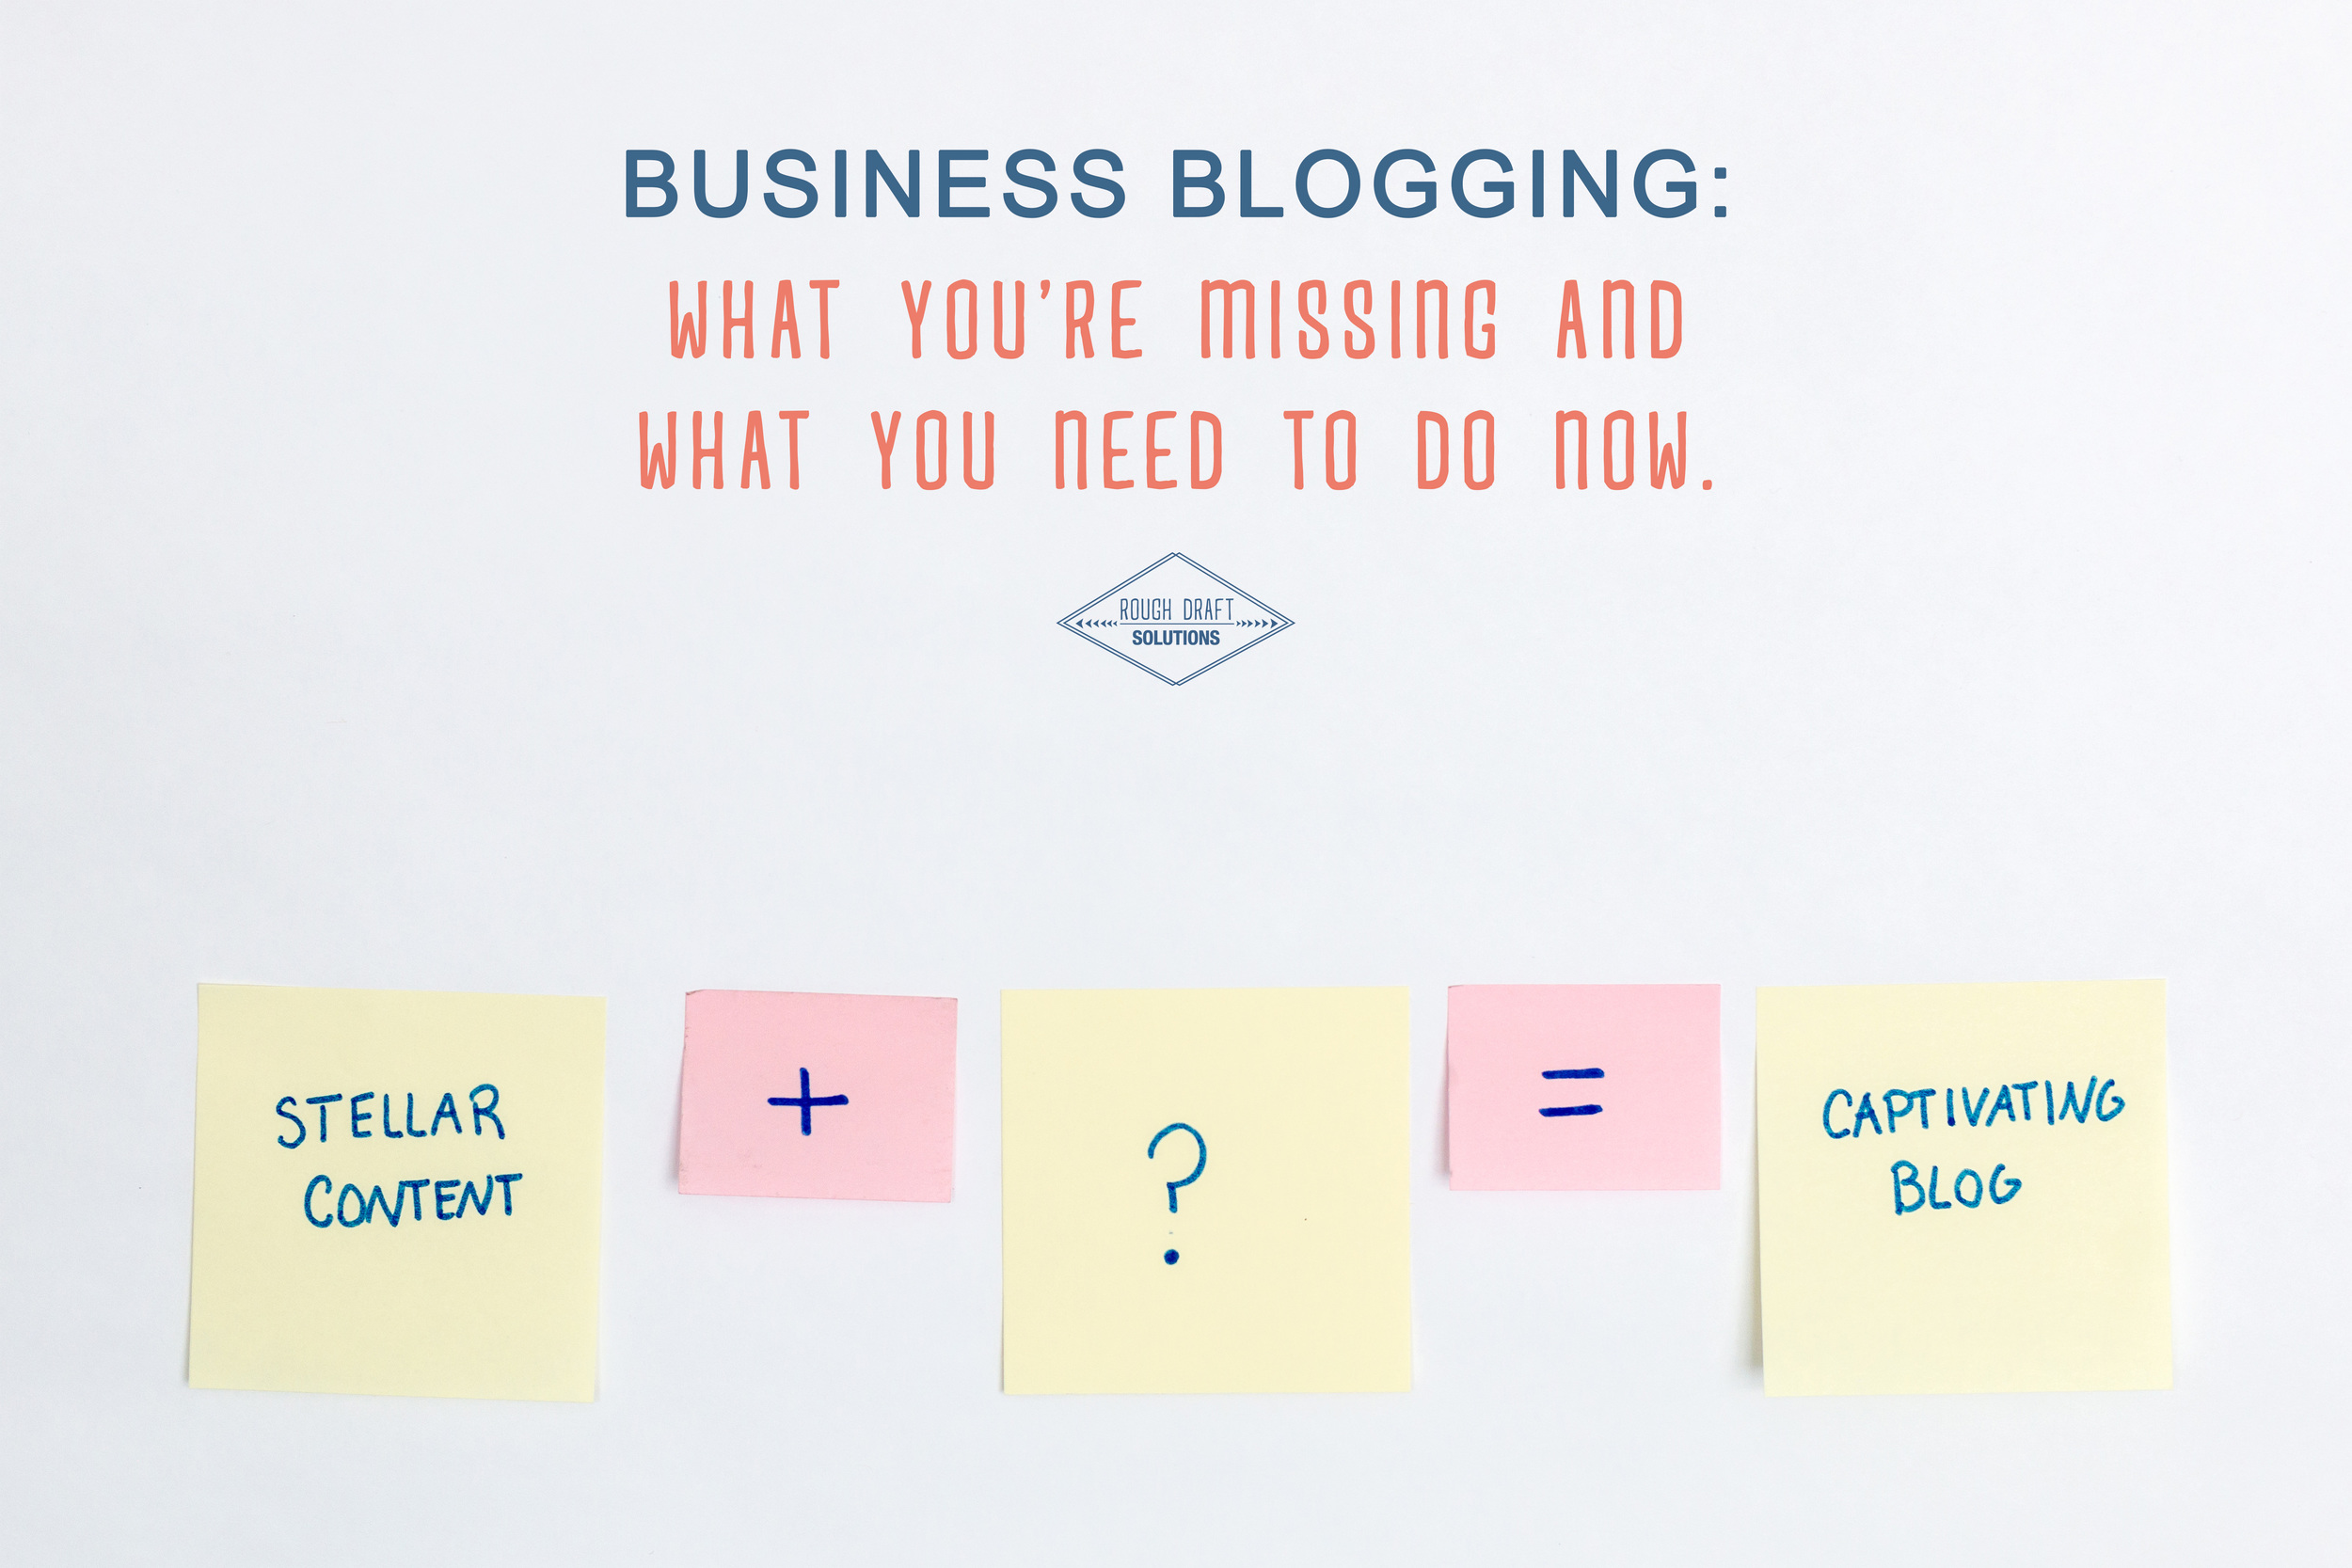 Business Blogging: What You're Missing and What You Need to Do Now